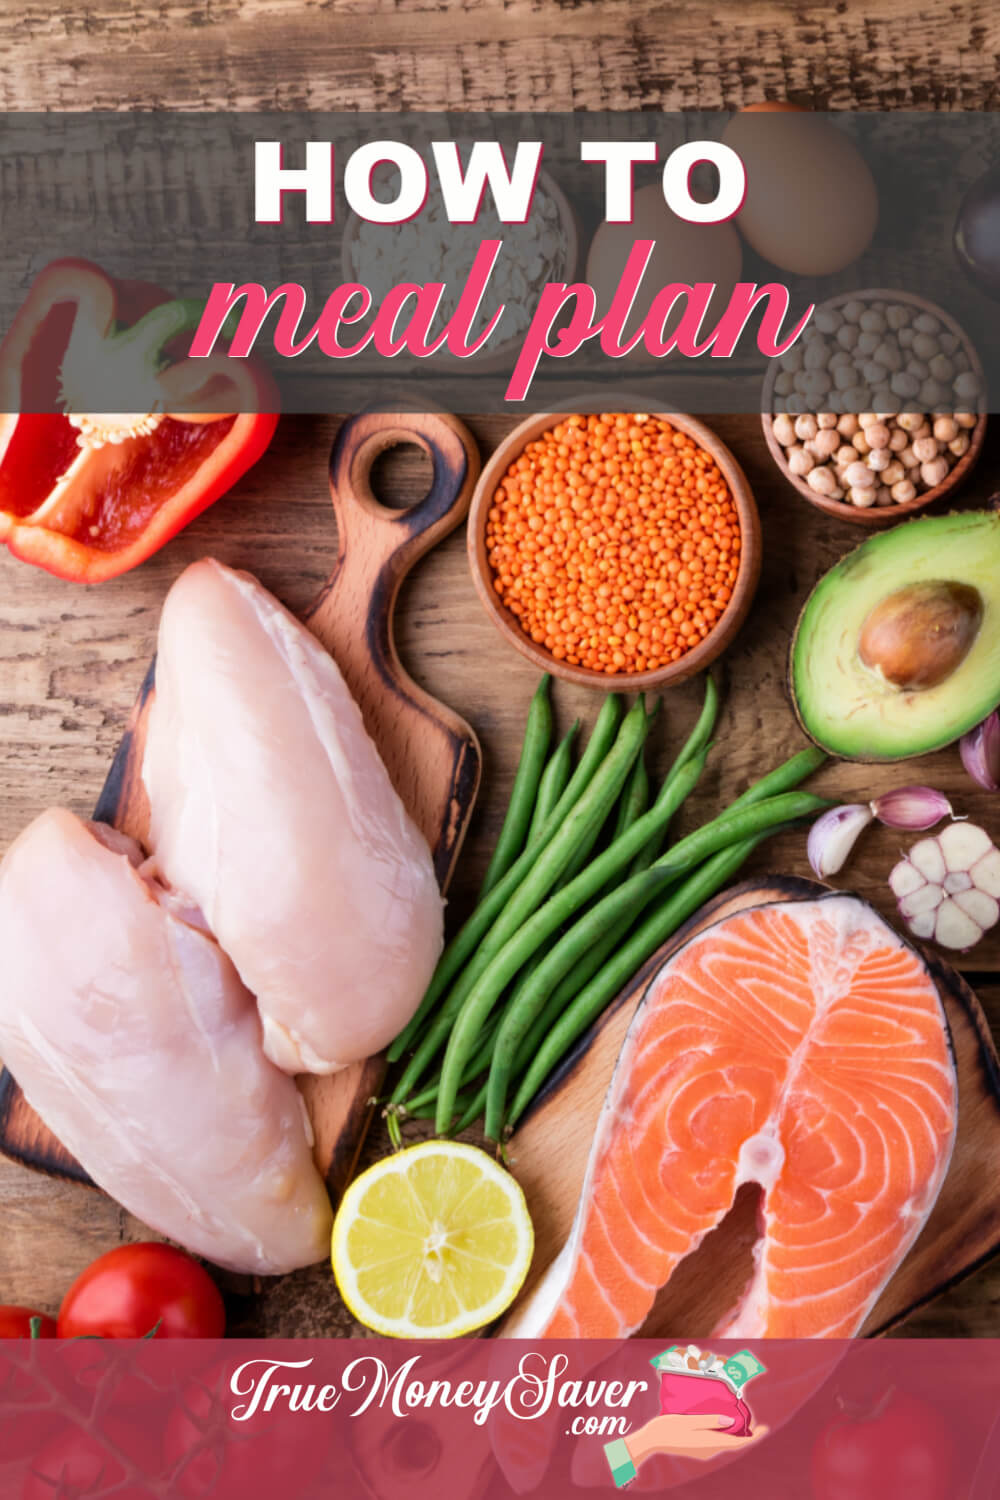 Get ready to build the ultimate meal plan with this free weekly meal plan template. These simple weekly meal plan template printables will get you started on making your meal plan the best for your family. Start creating with this awesome weekly meal plan template!